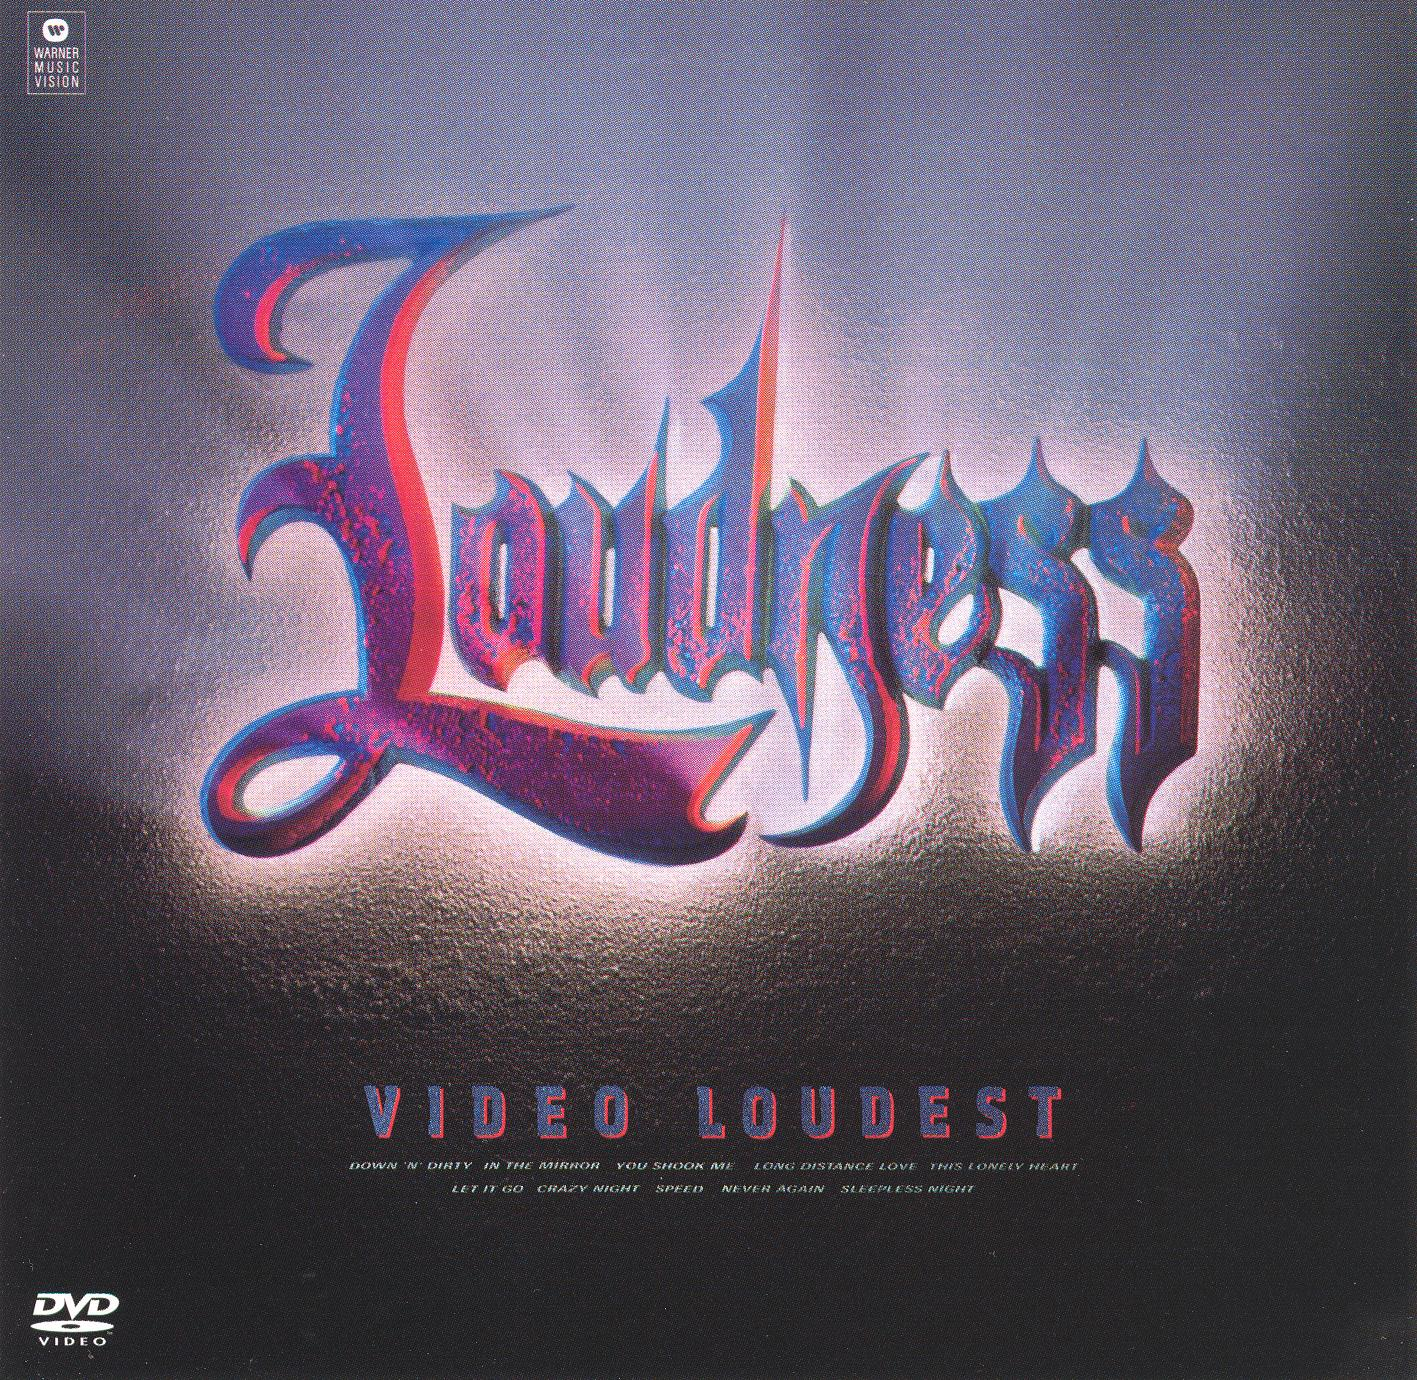 Loudness: Video Loudest